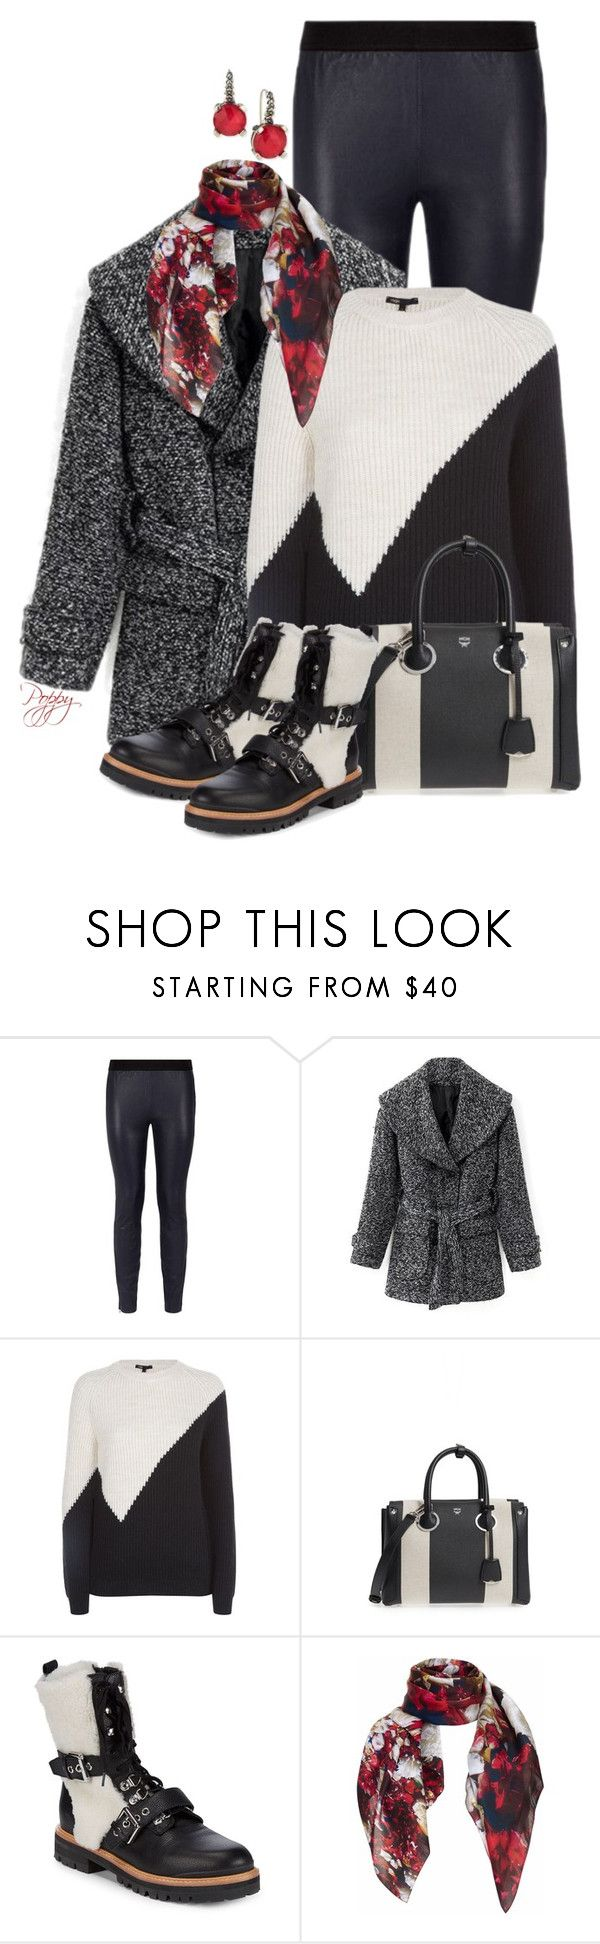 """""""Color Block Bag & Boots"""" by bainbridgegal ❤ liked on Polyvore featuring Reiss, Maje, MCM, Rebecca Minkoff, Pam Weinstock London and Stephen Dweck"""